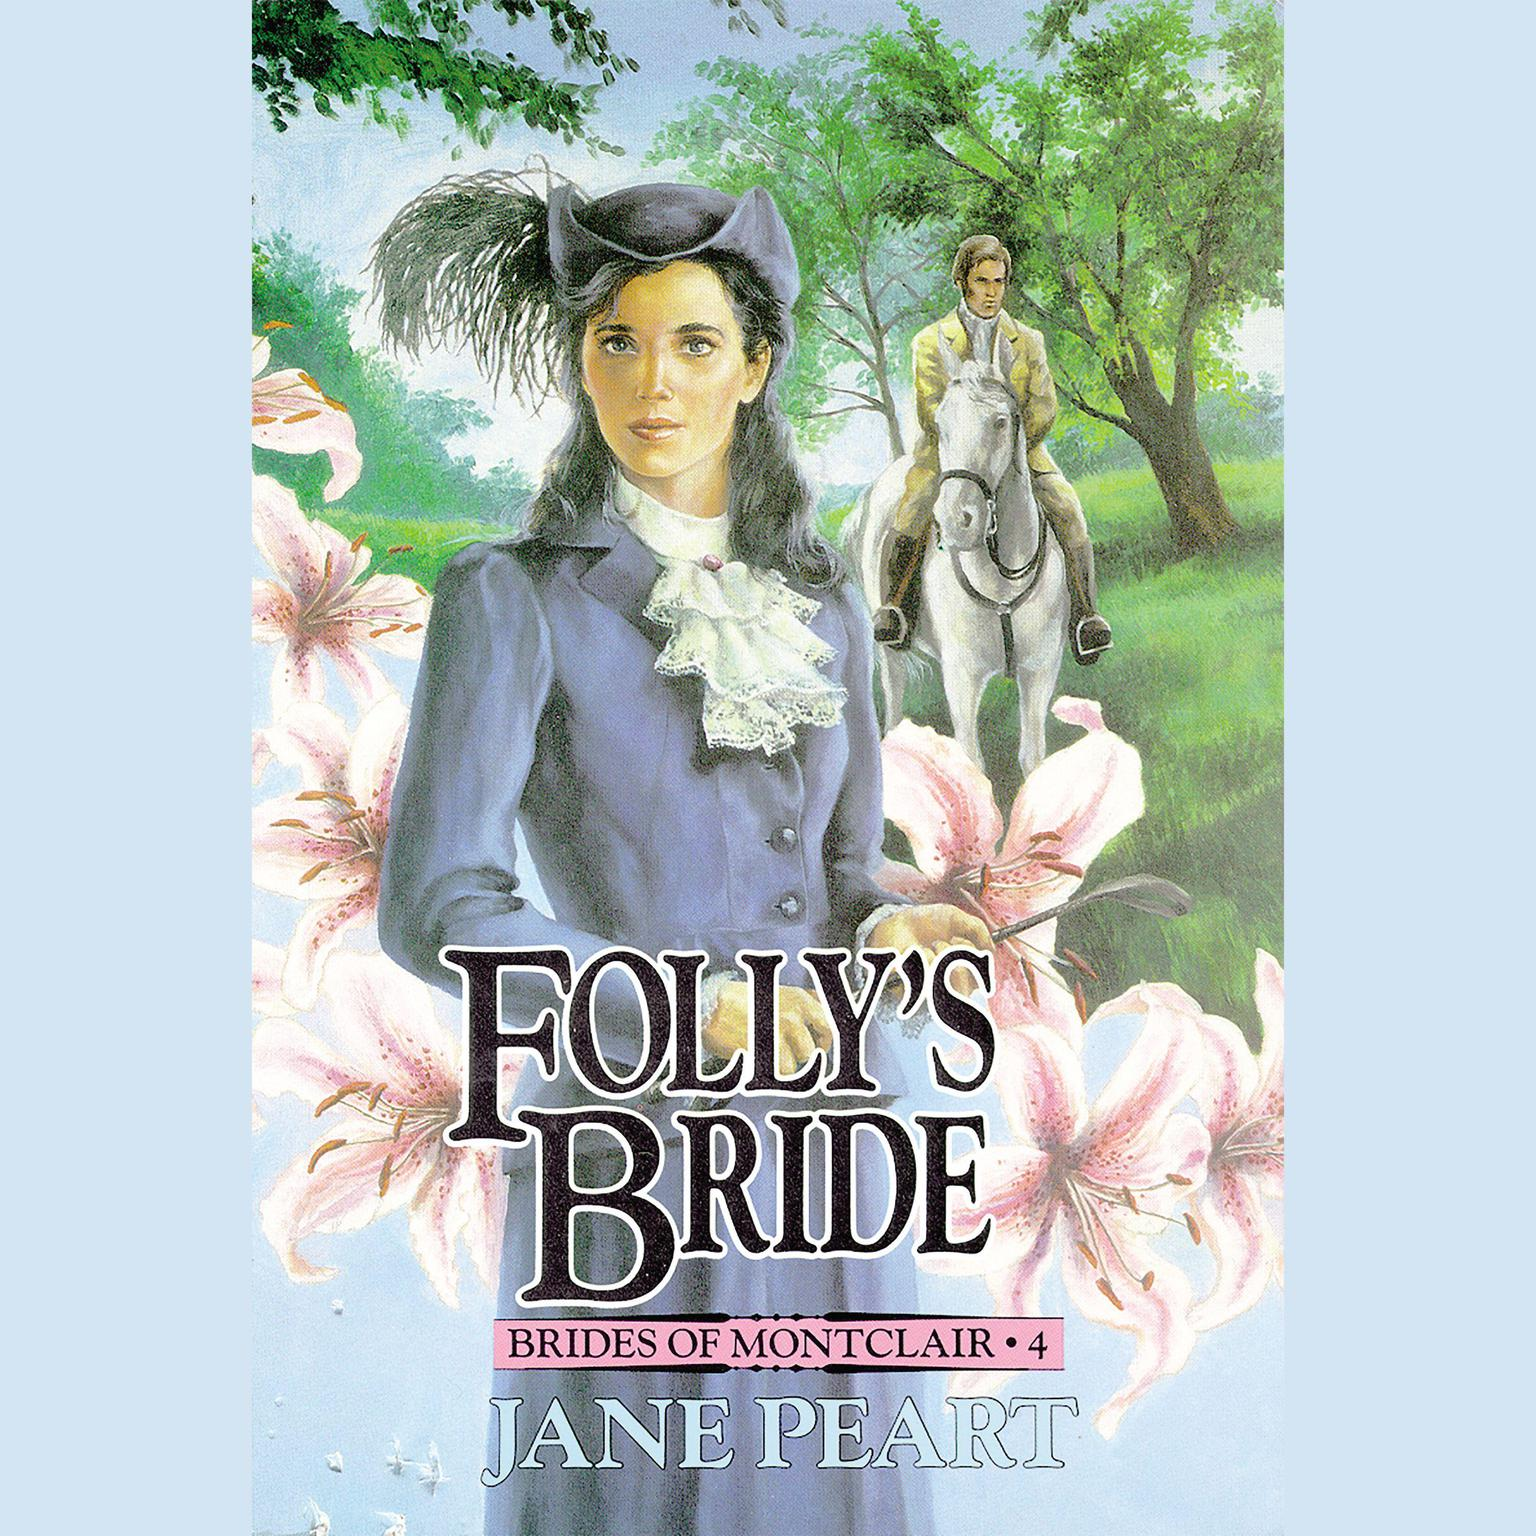 Printable Folly's Bride: Book 4 Audiobook Cover Art